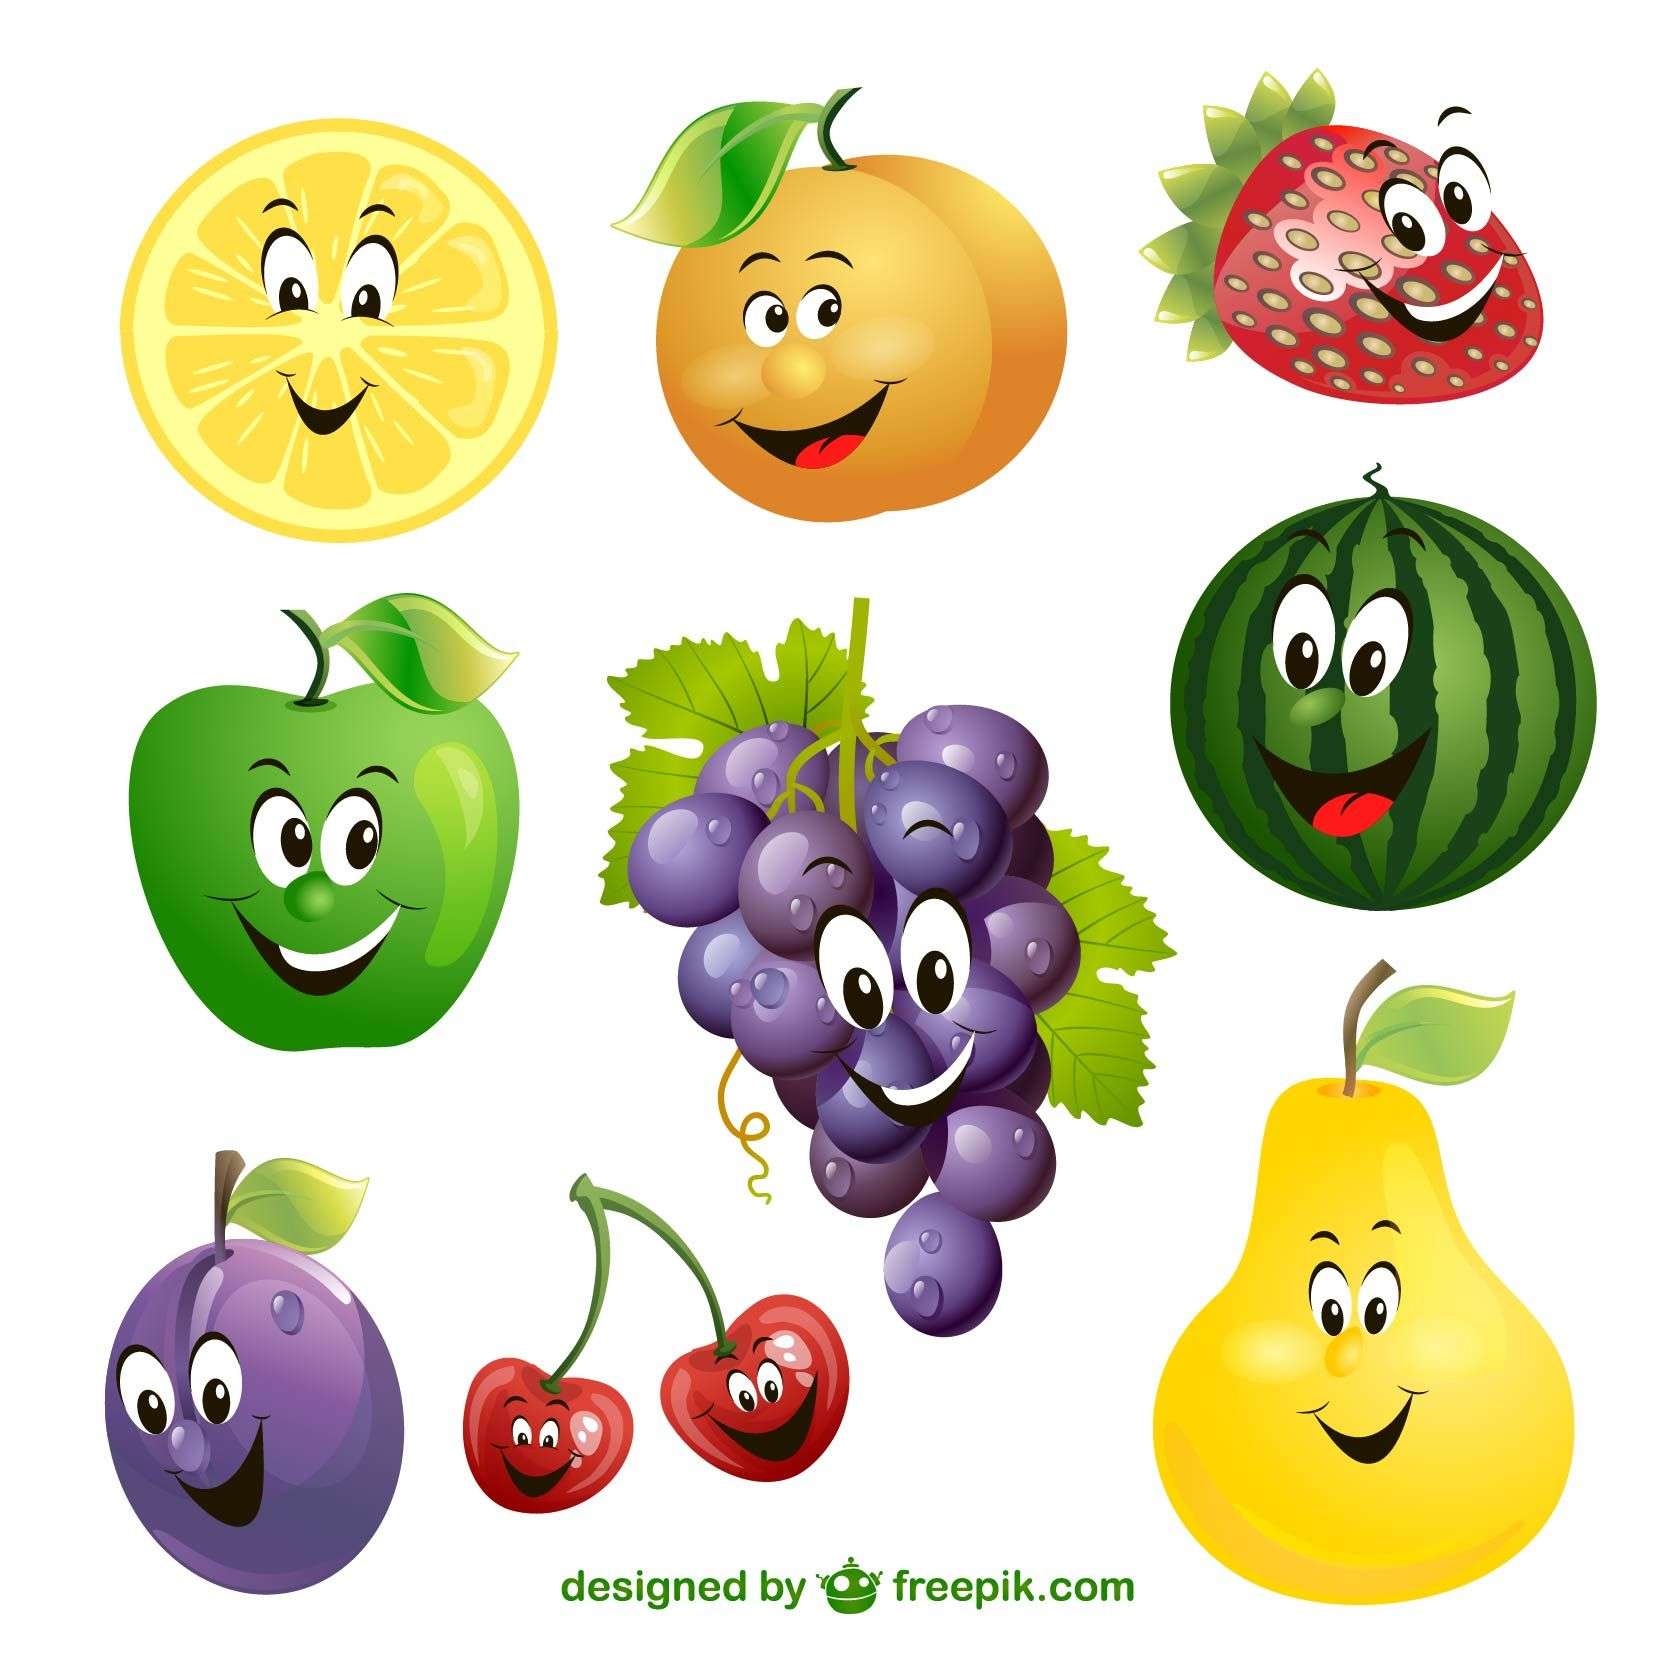 Fresh fruits and veggies pack an extra punch! Fruits and